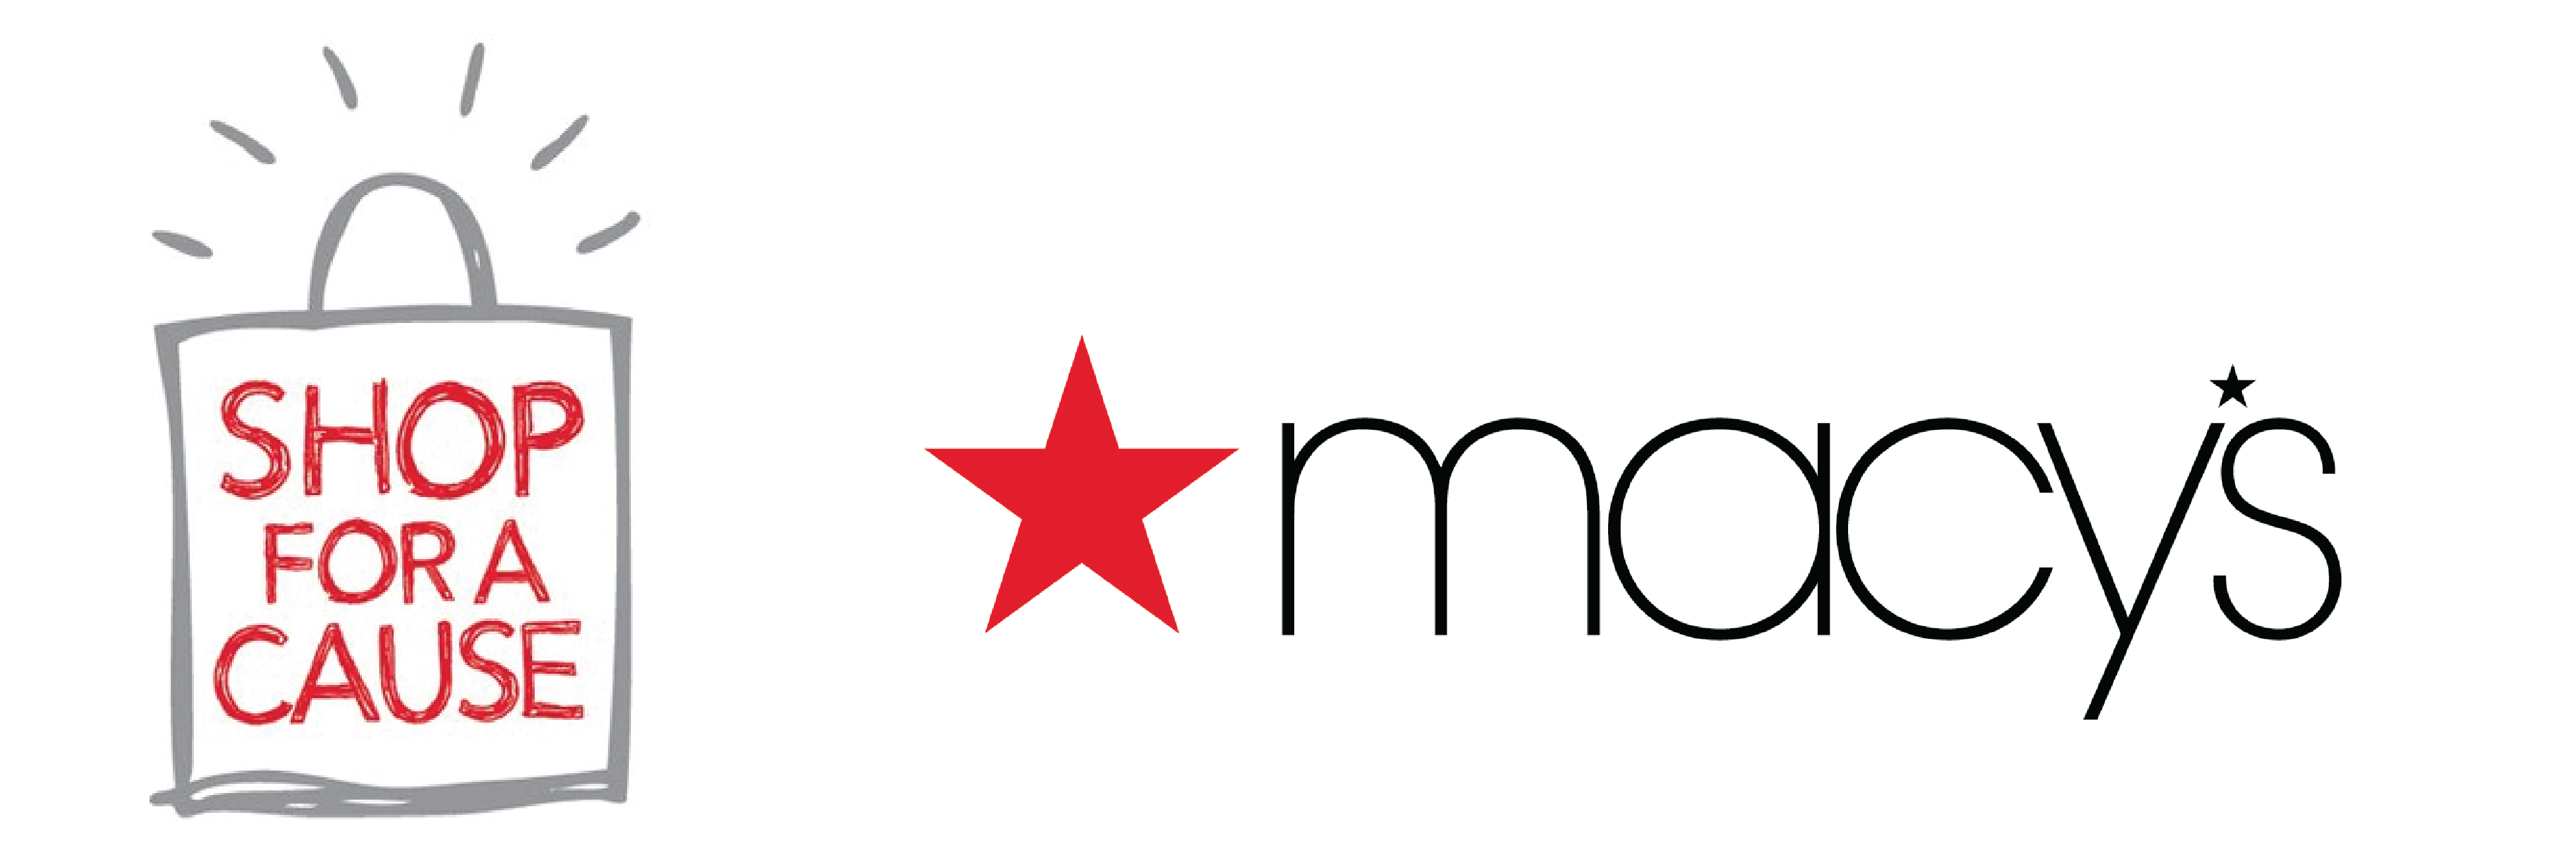 Macys Clearance Furniture HOPES Teams Up With Macy's to Shop For A Cause | Northern ...